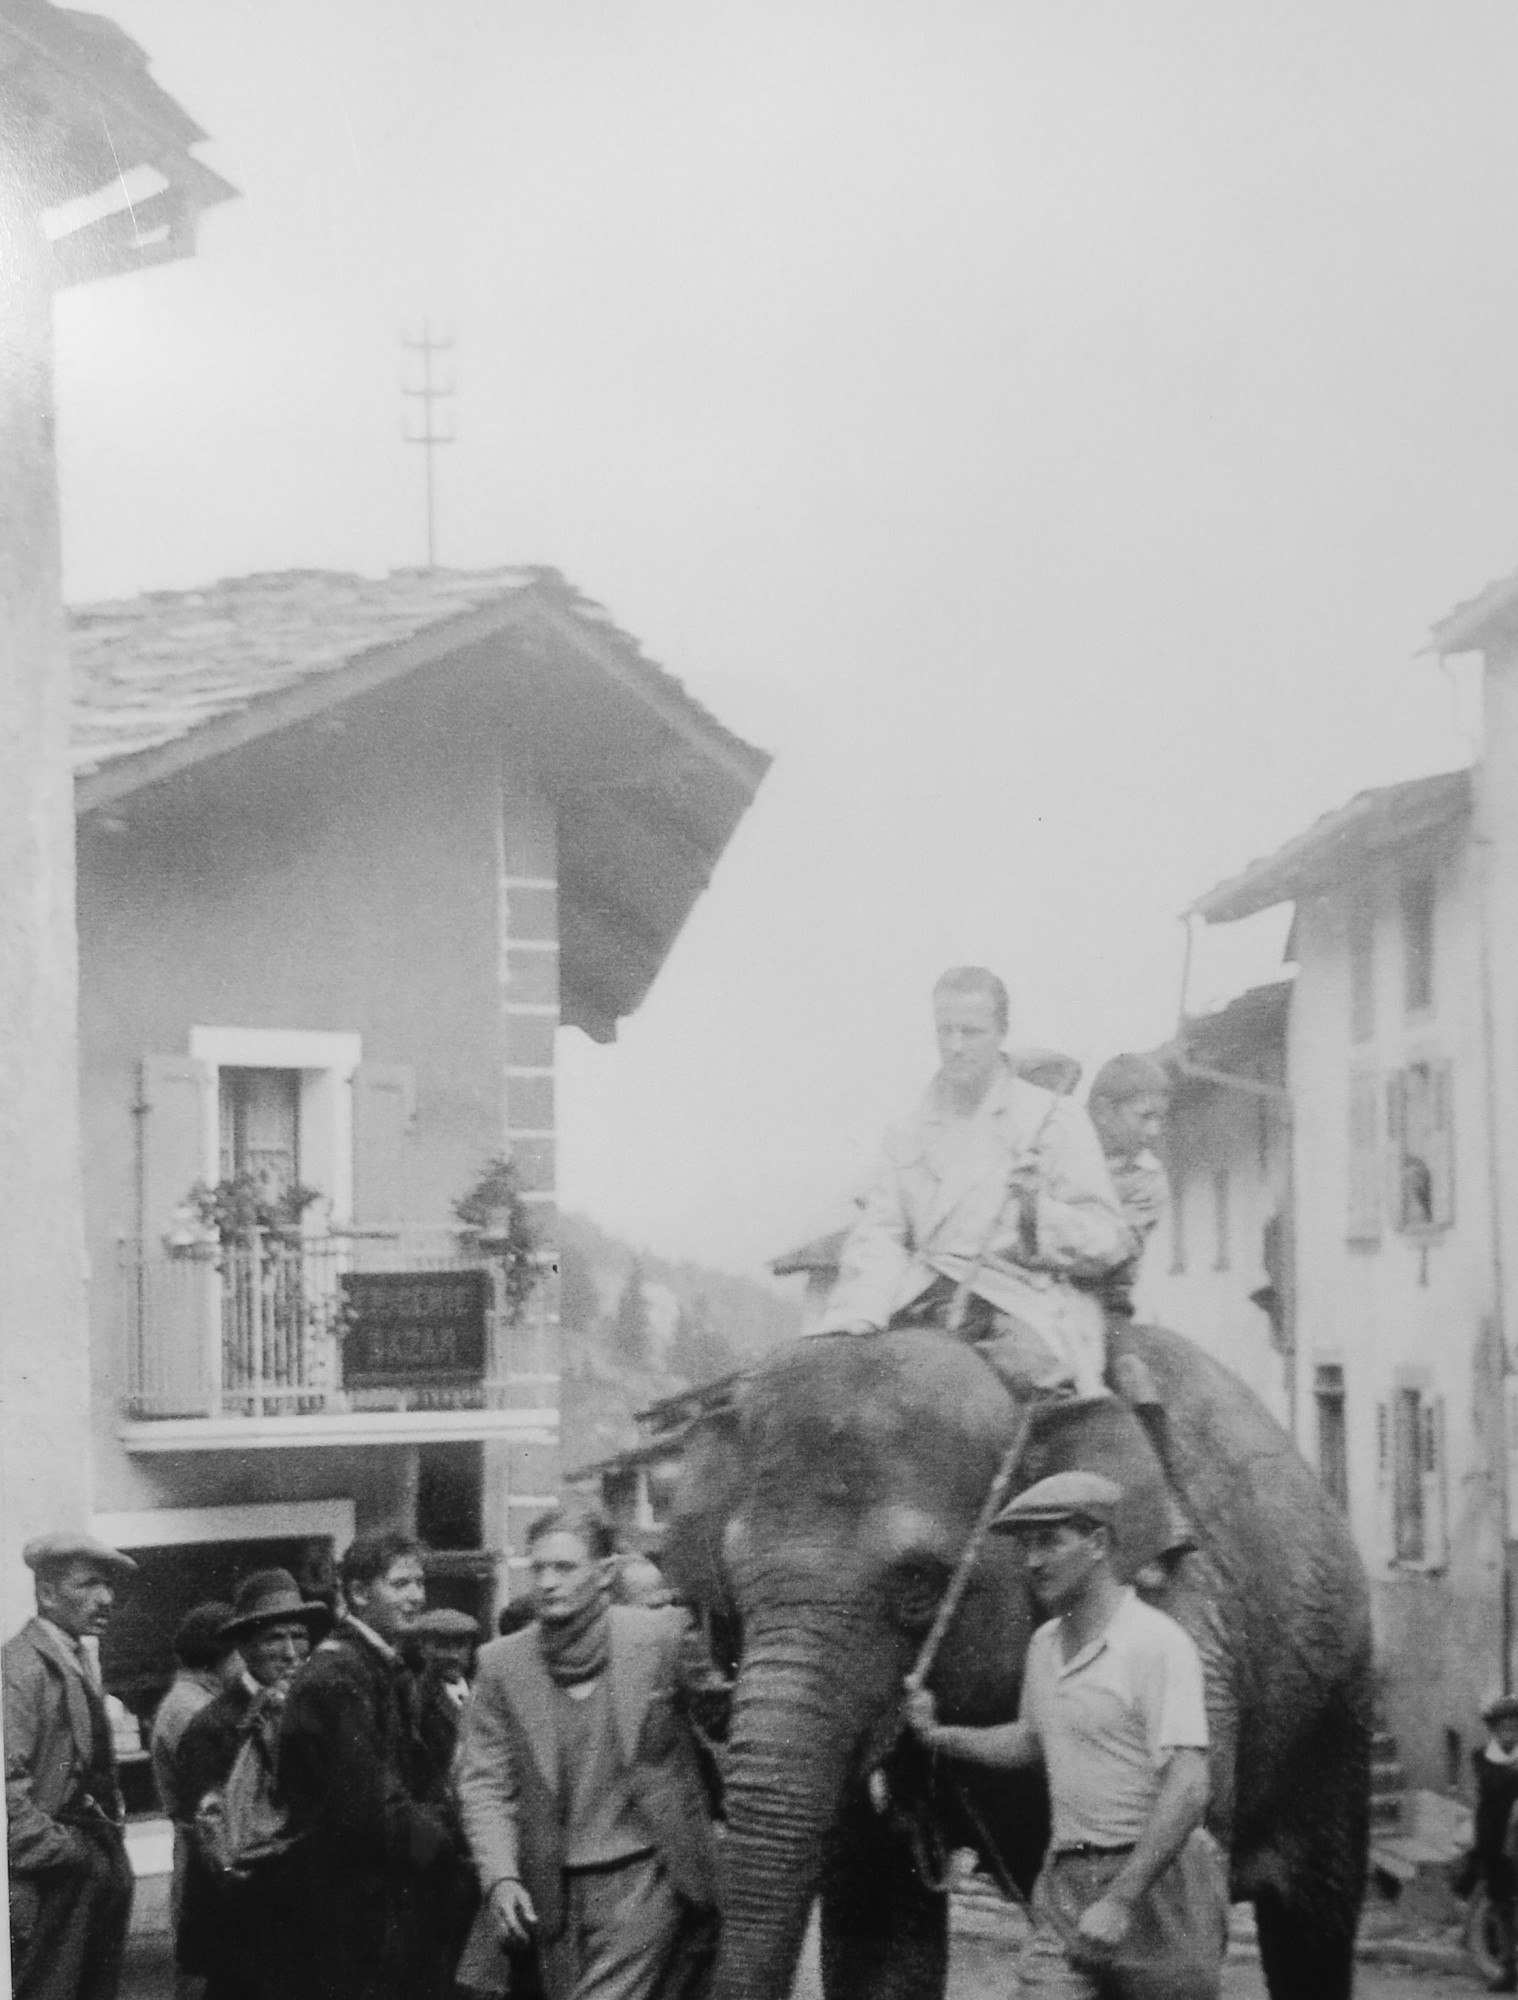 Photo of Richard riding Elysabethe Dalrymple through a town in 1935.  This photo is posted on a display at Great Saint Bernard Pass--they remember Richard!